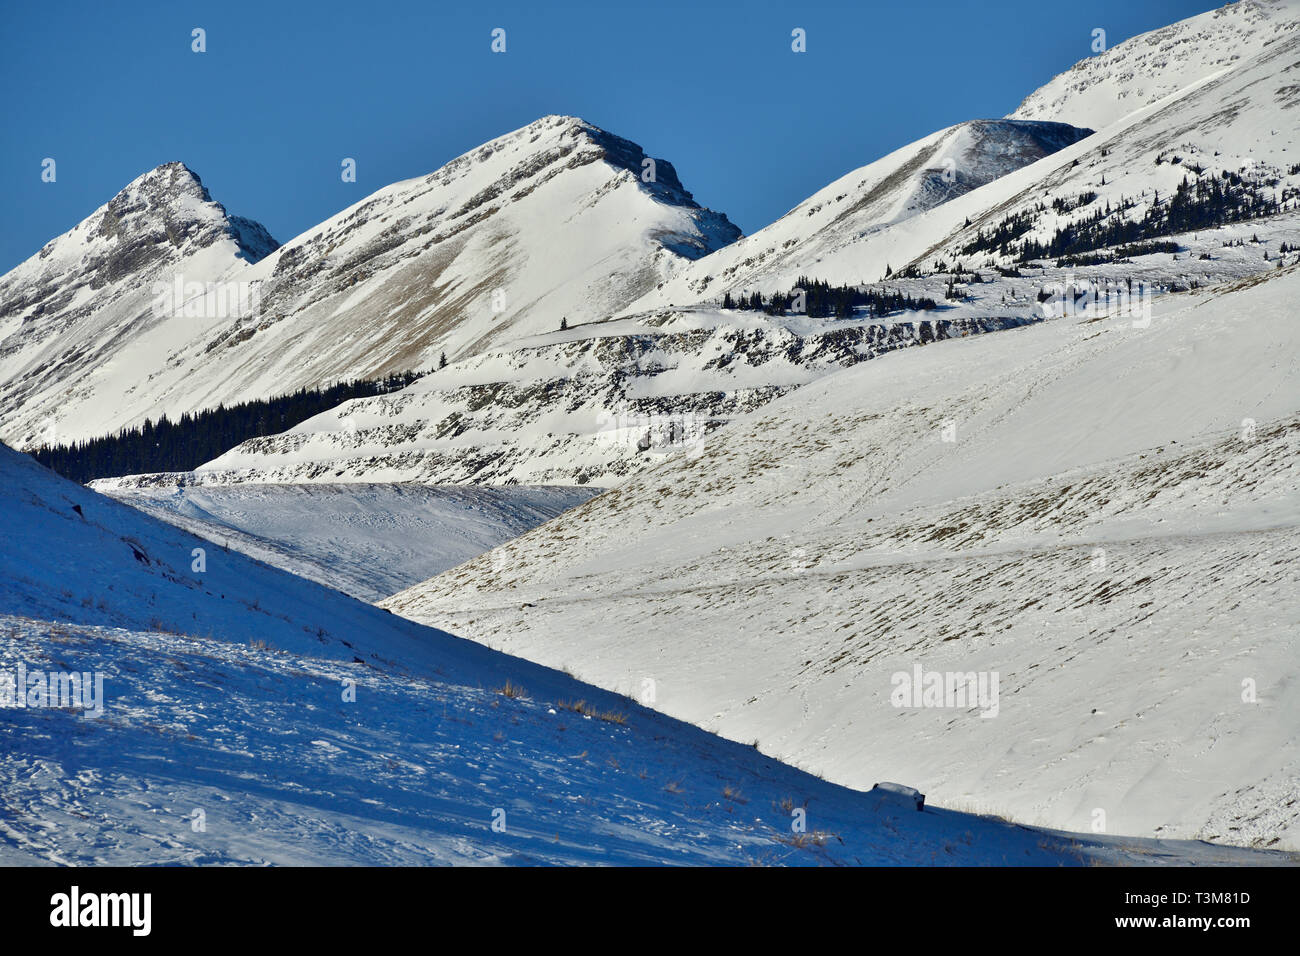 A landscape image of the snow covered rocky mountains with rising peaks and valleys near Cadomin Alberta Canada - Stock Image